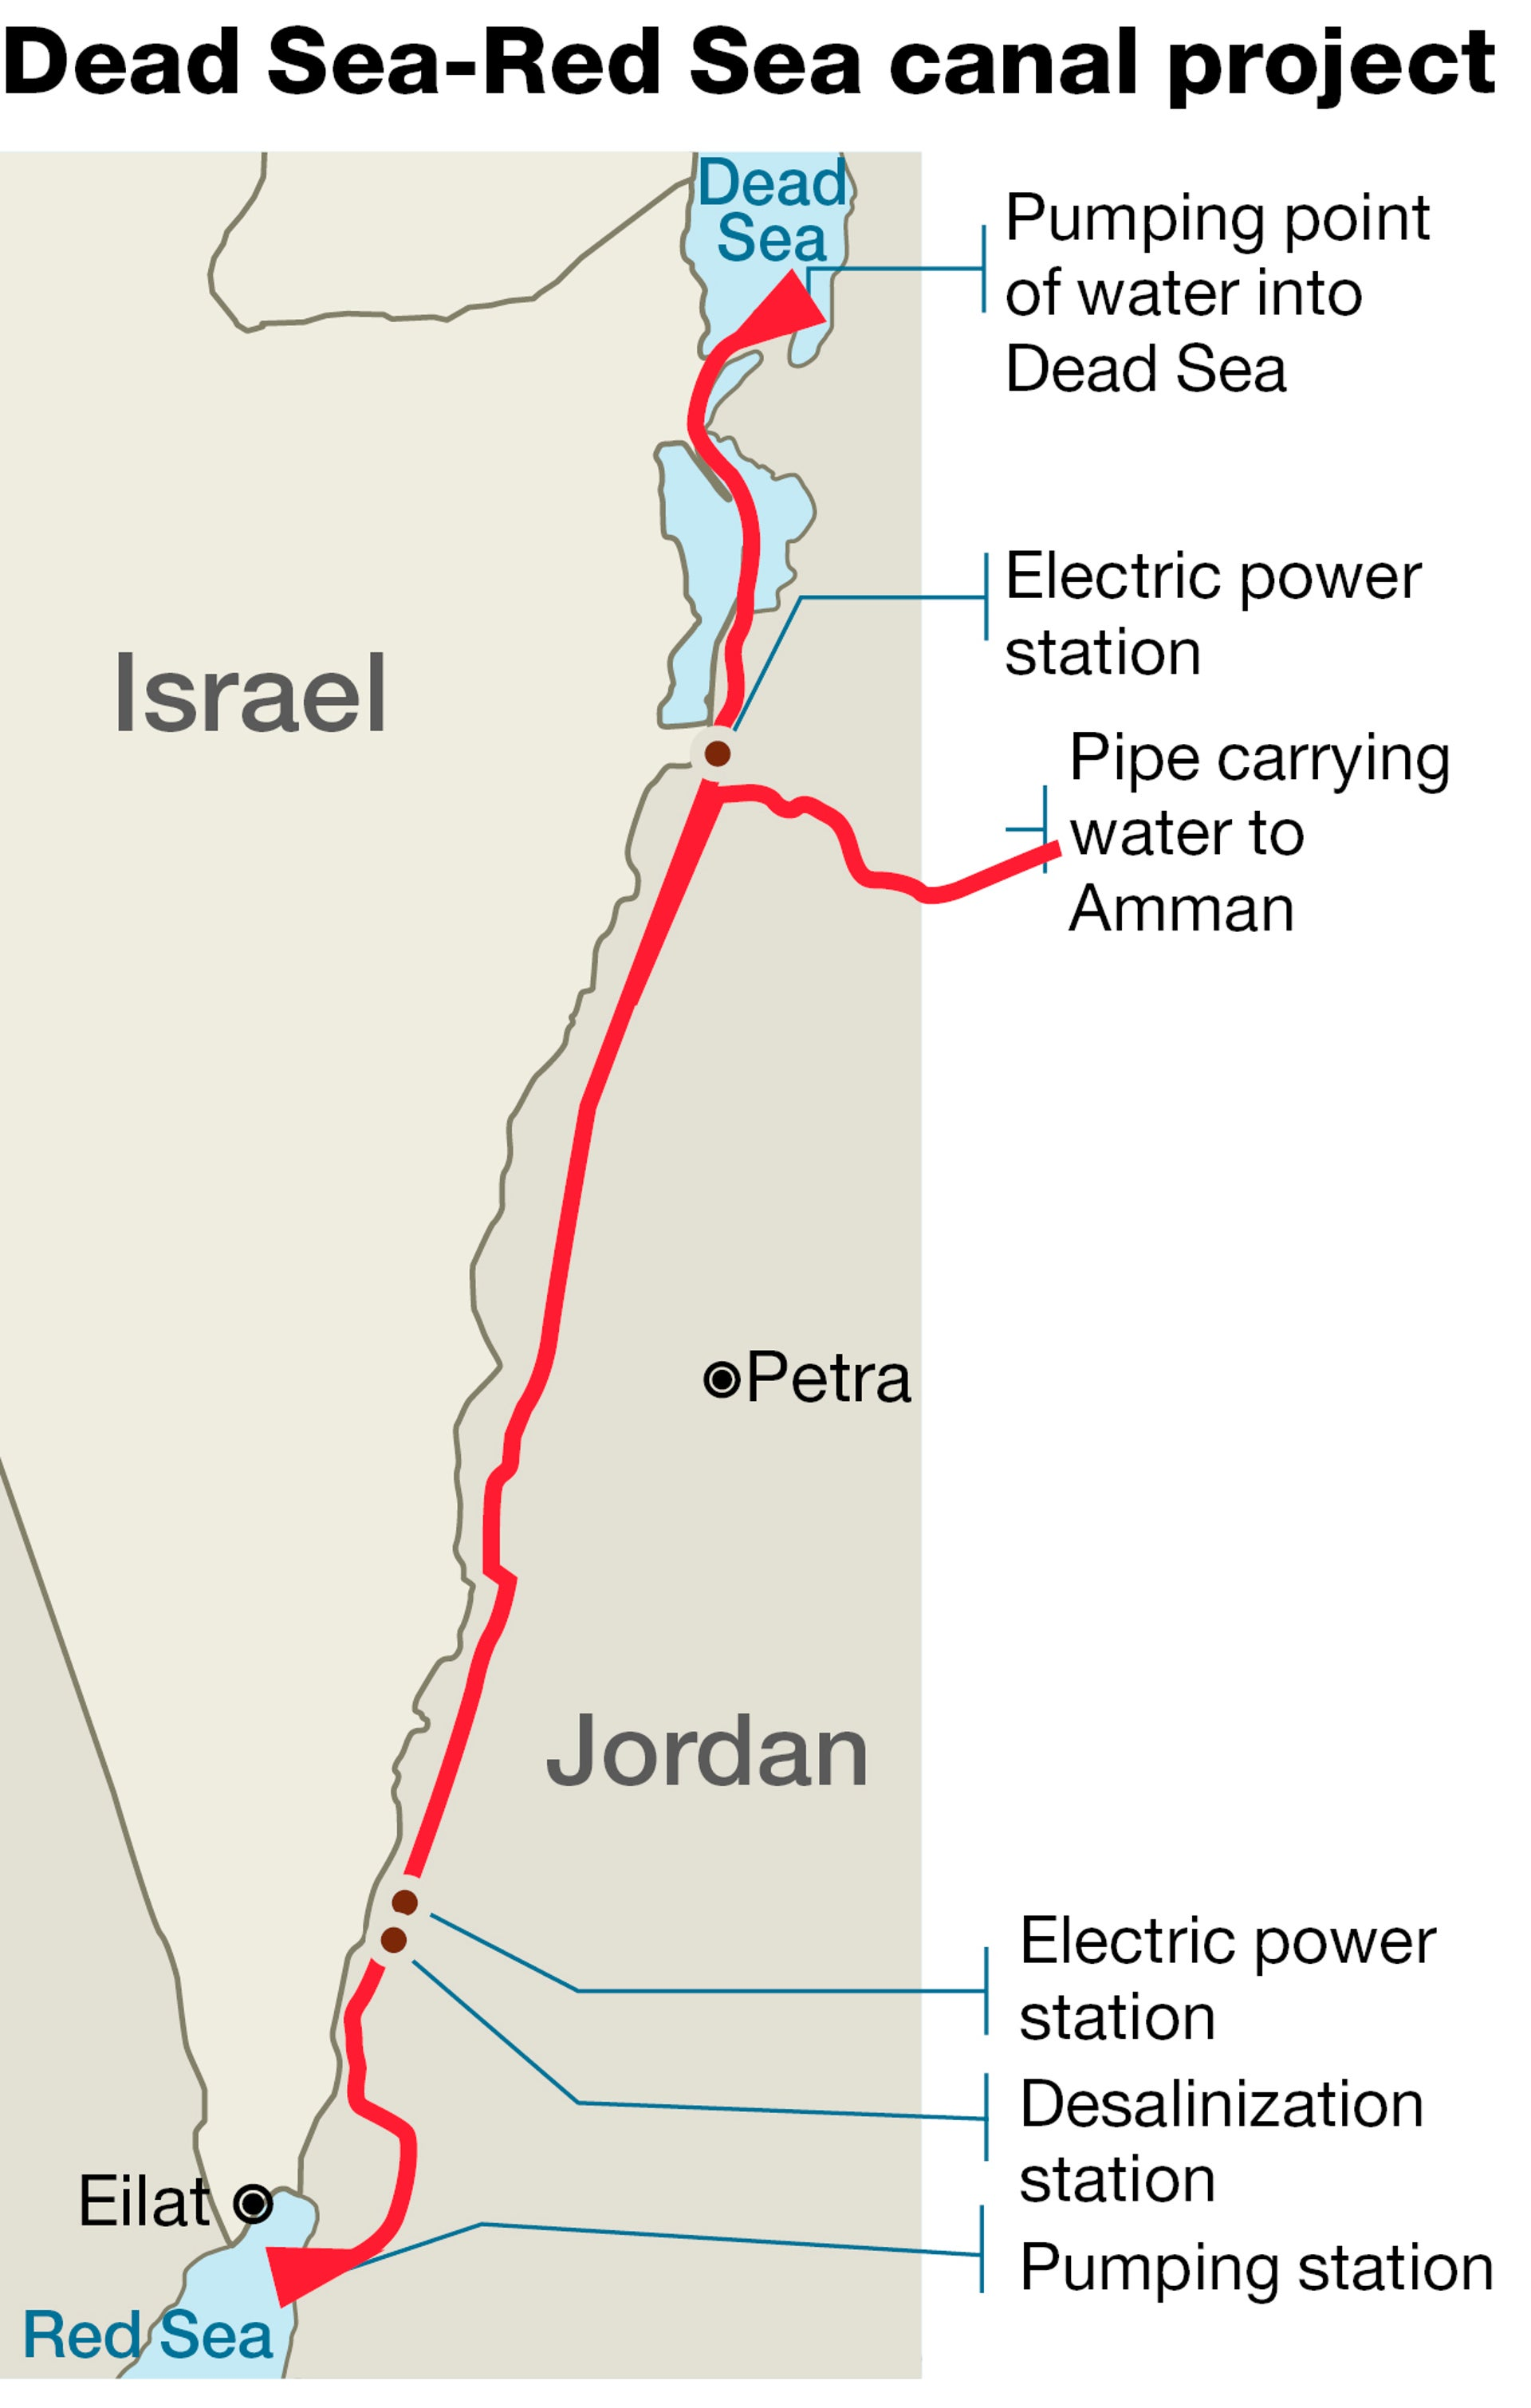 Dead Sea-Red Sea canal project